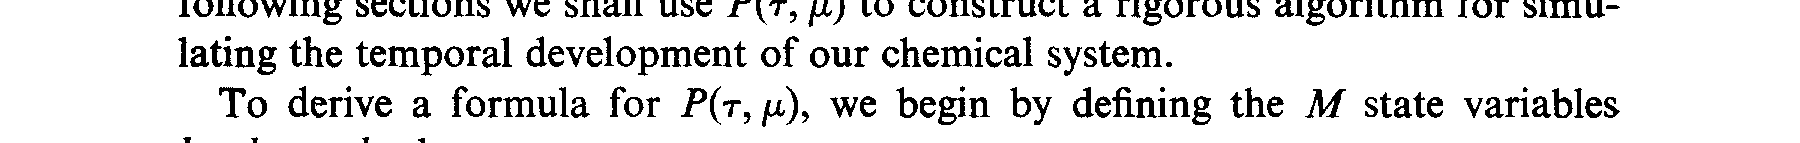 chemical kinetics, or at least it has not been utilized in the systematic way we shall propose